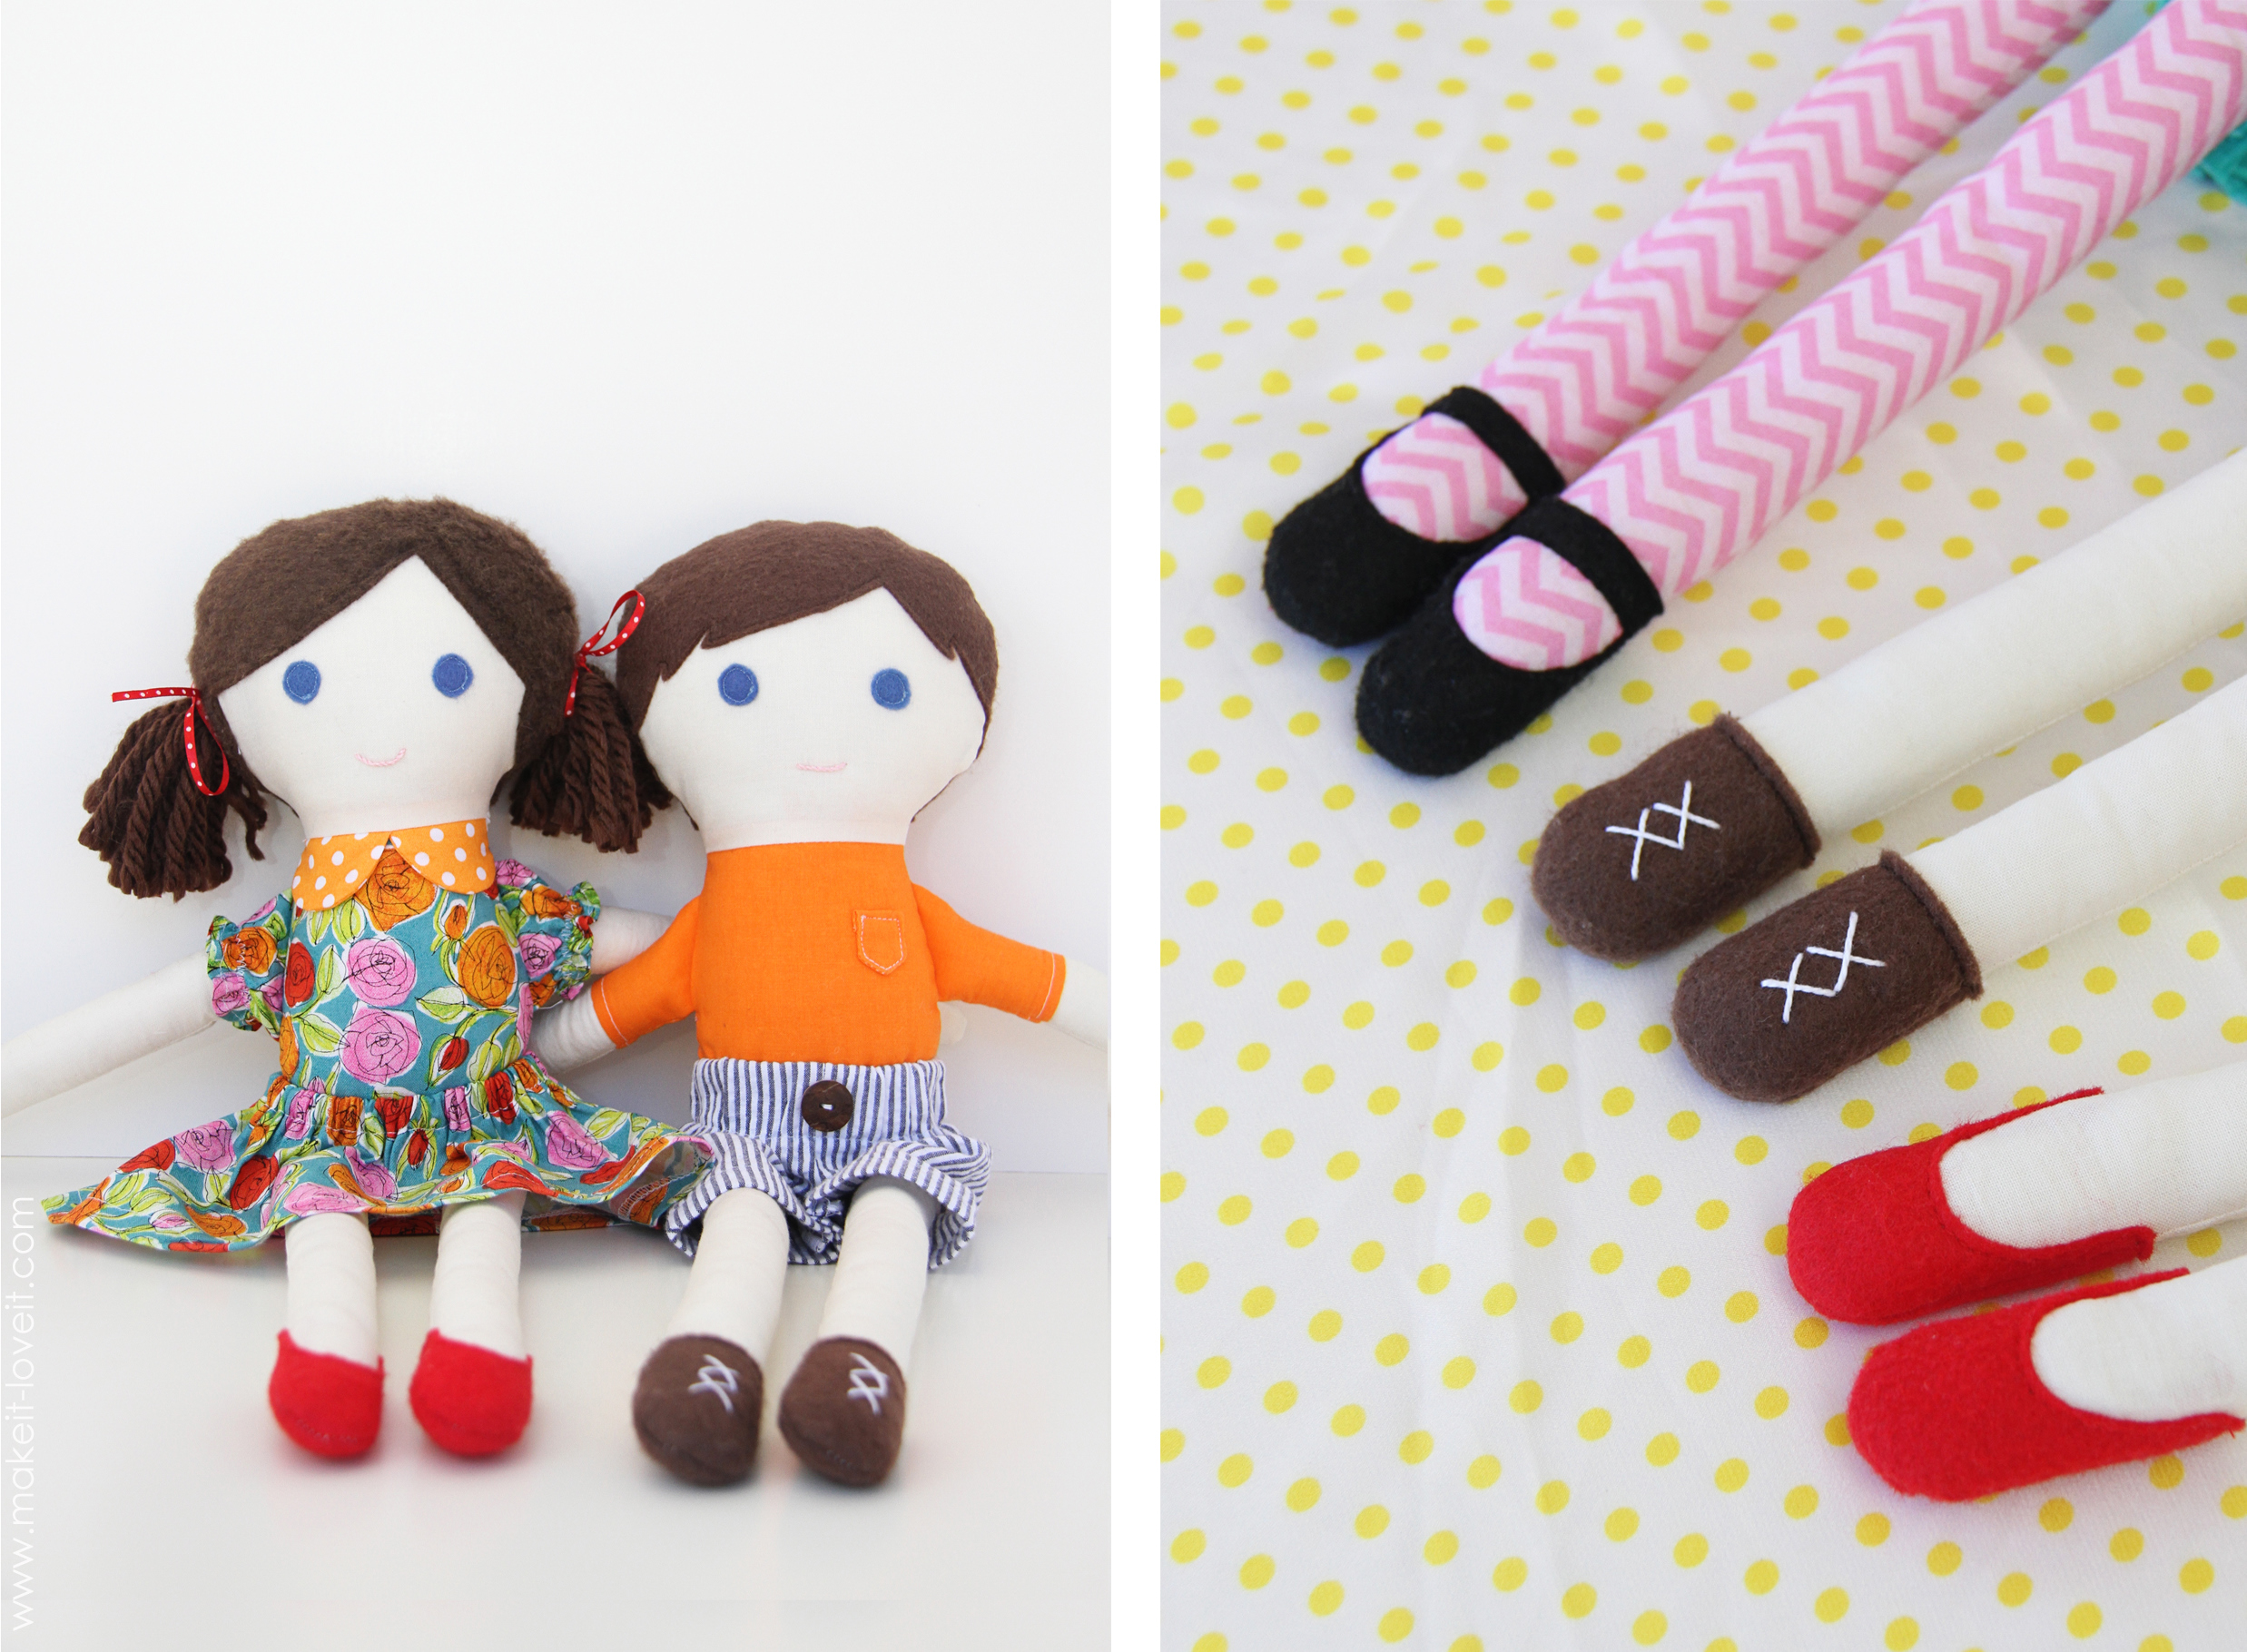 Make a soft doll with your own hands. The process is simple and extremely interesting